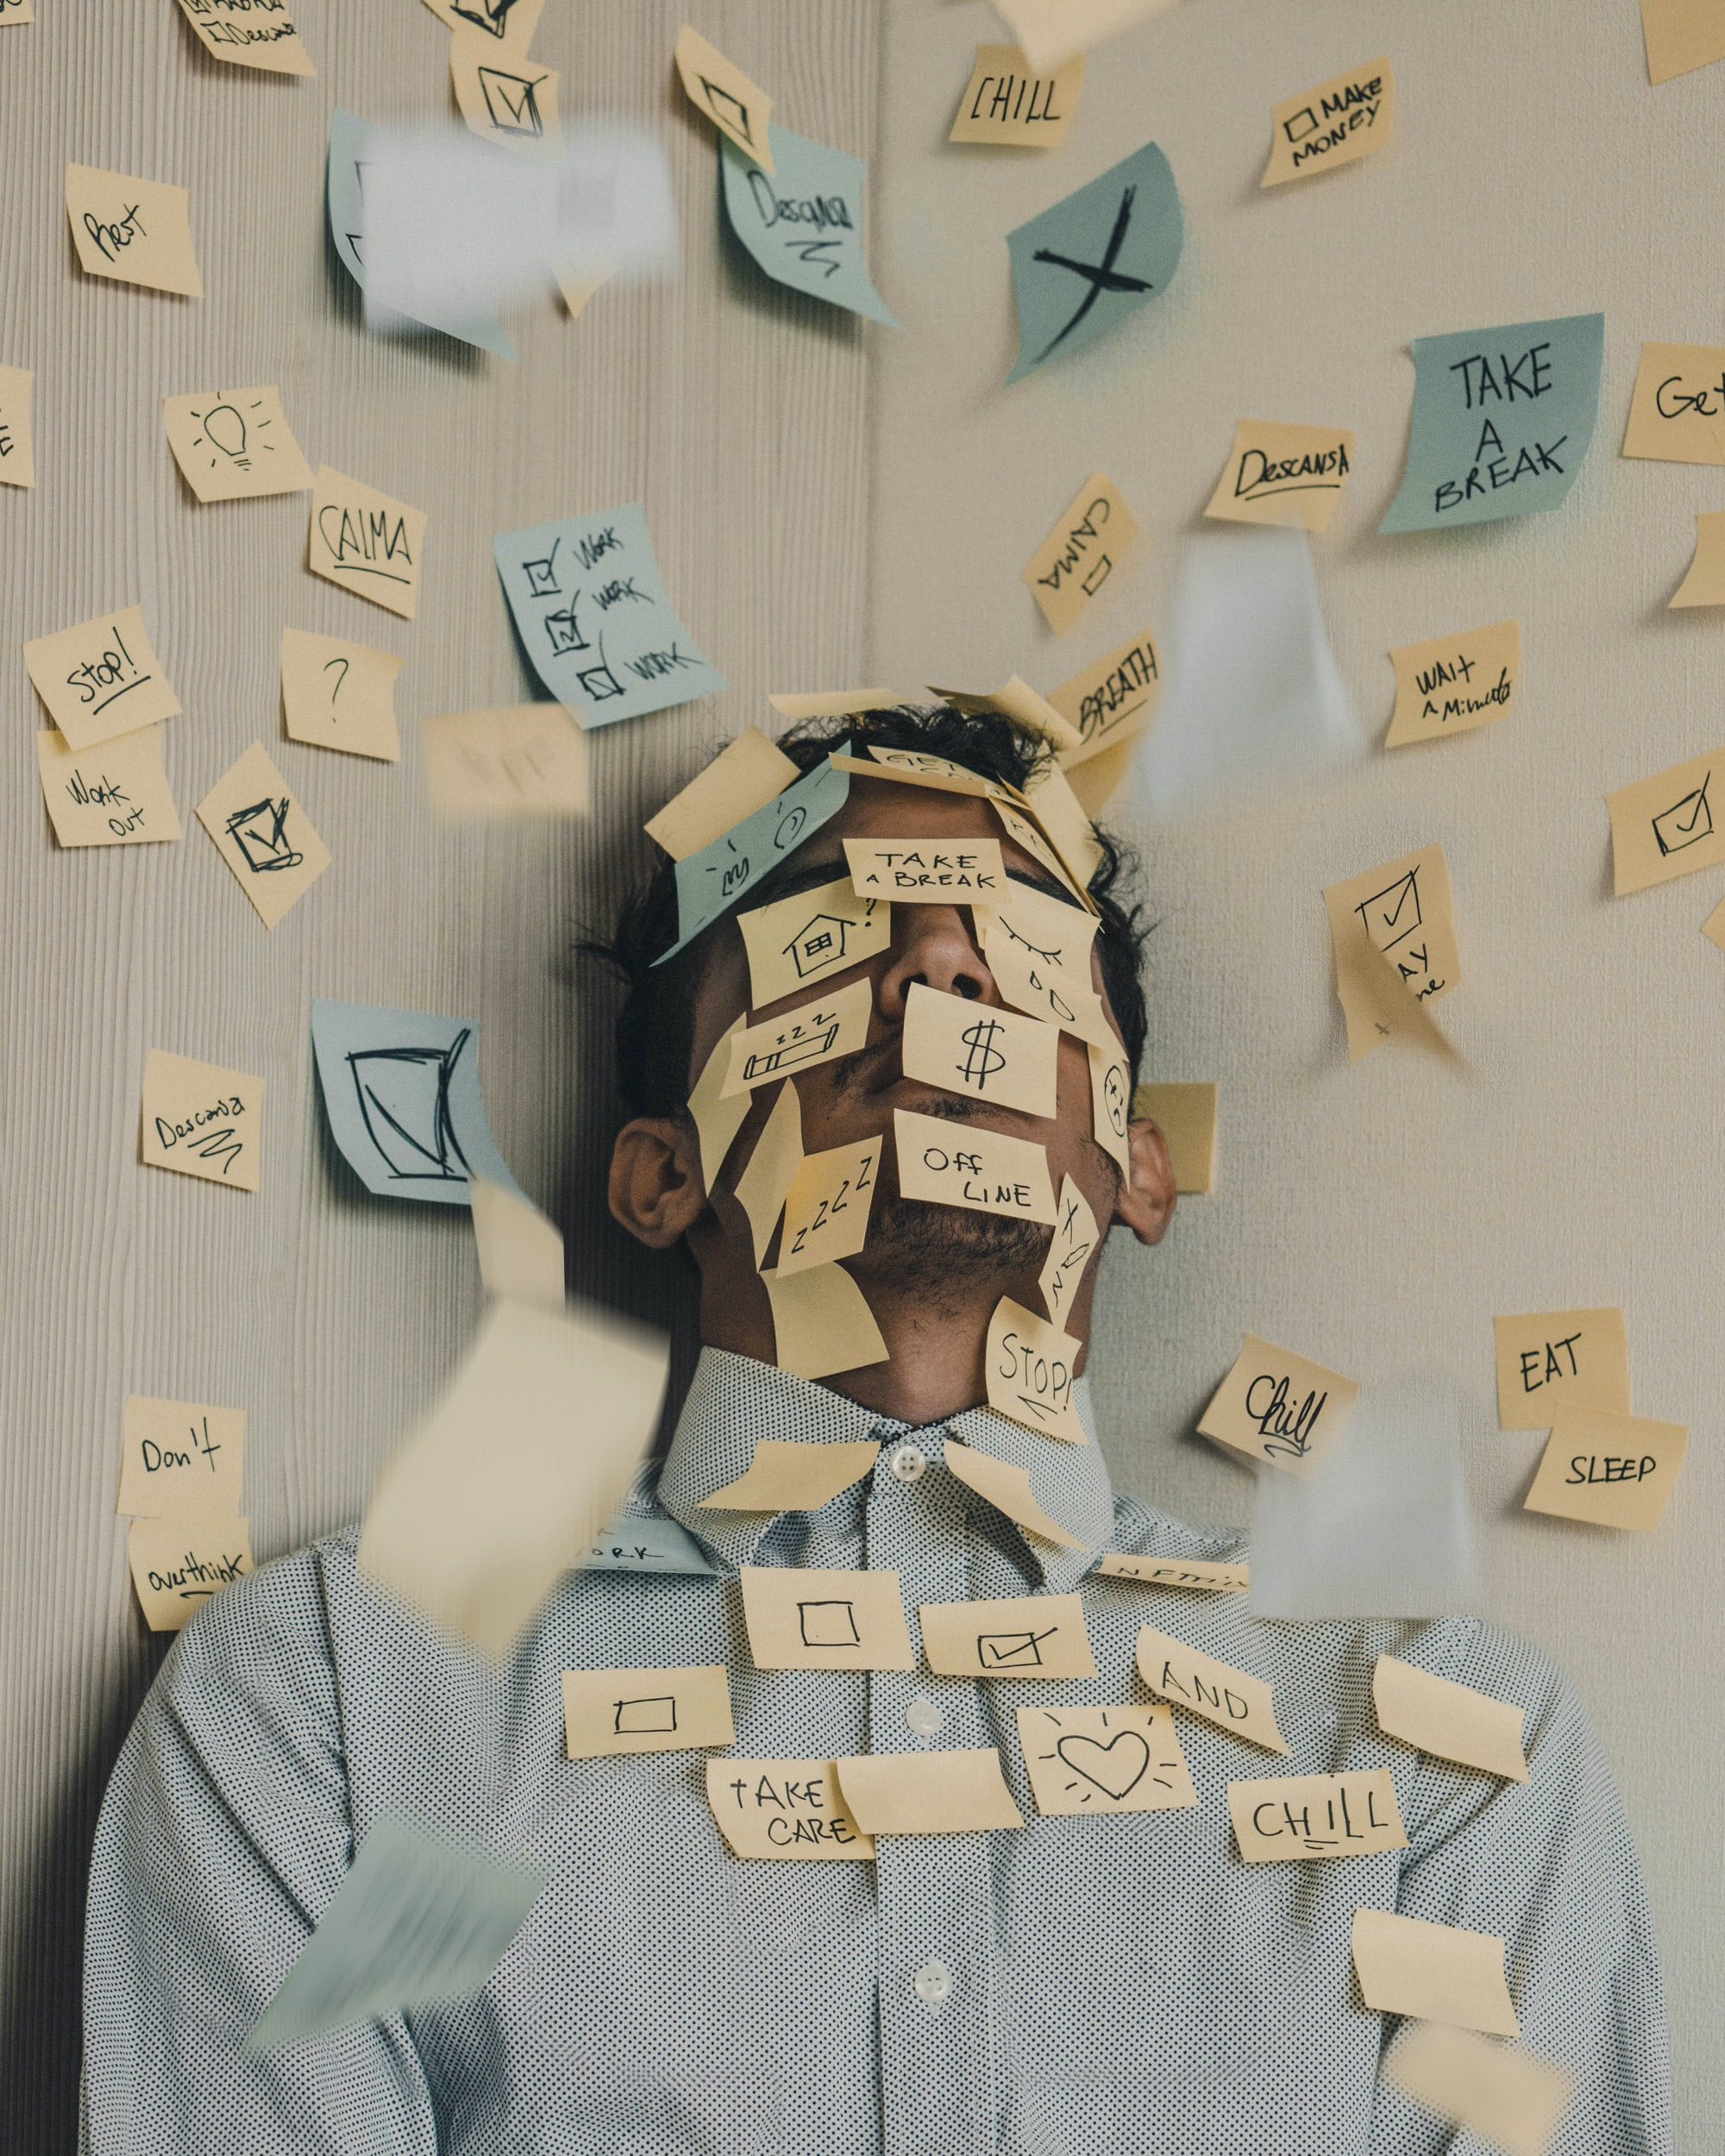 Young man covered in sticky notes, work overload